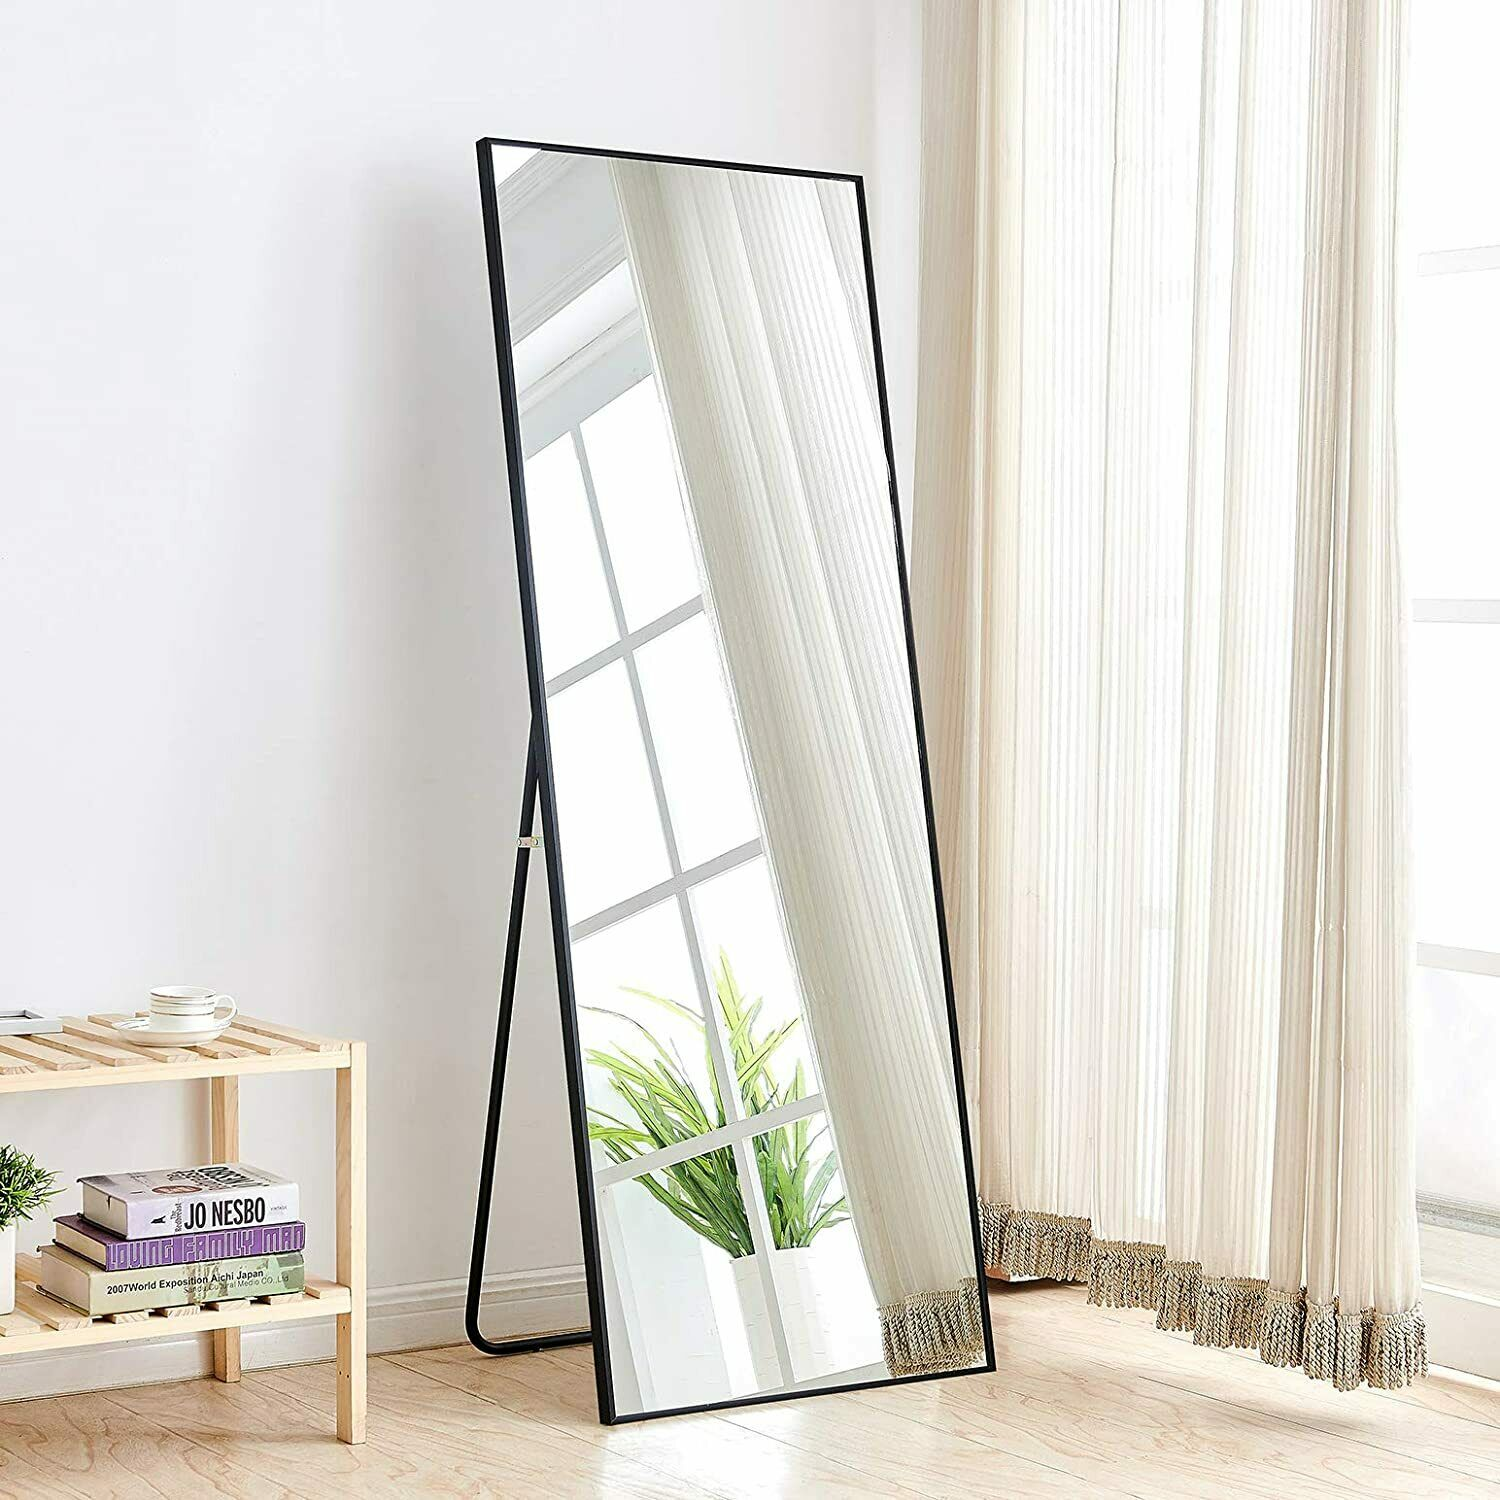 Full Length Mirror Bedroom Floor Mirror Free Standing Hanging Large Black Mirror Ebay